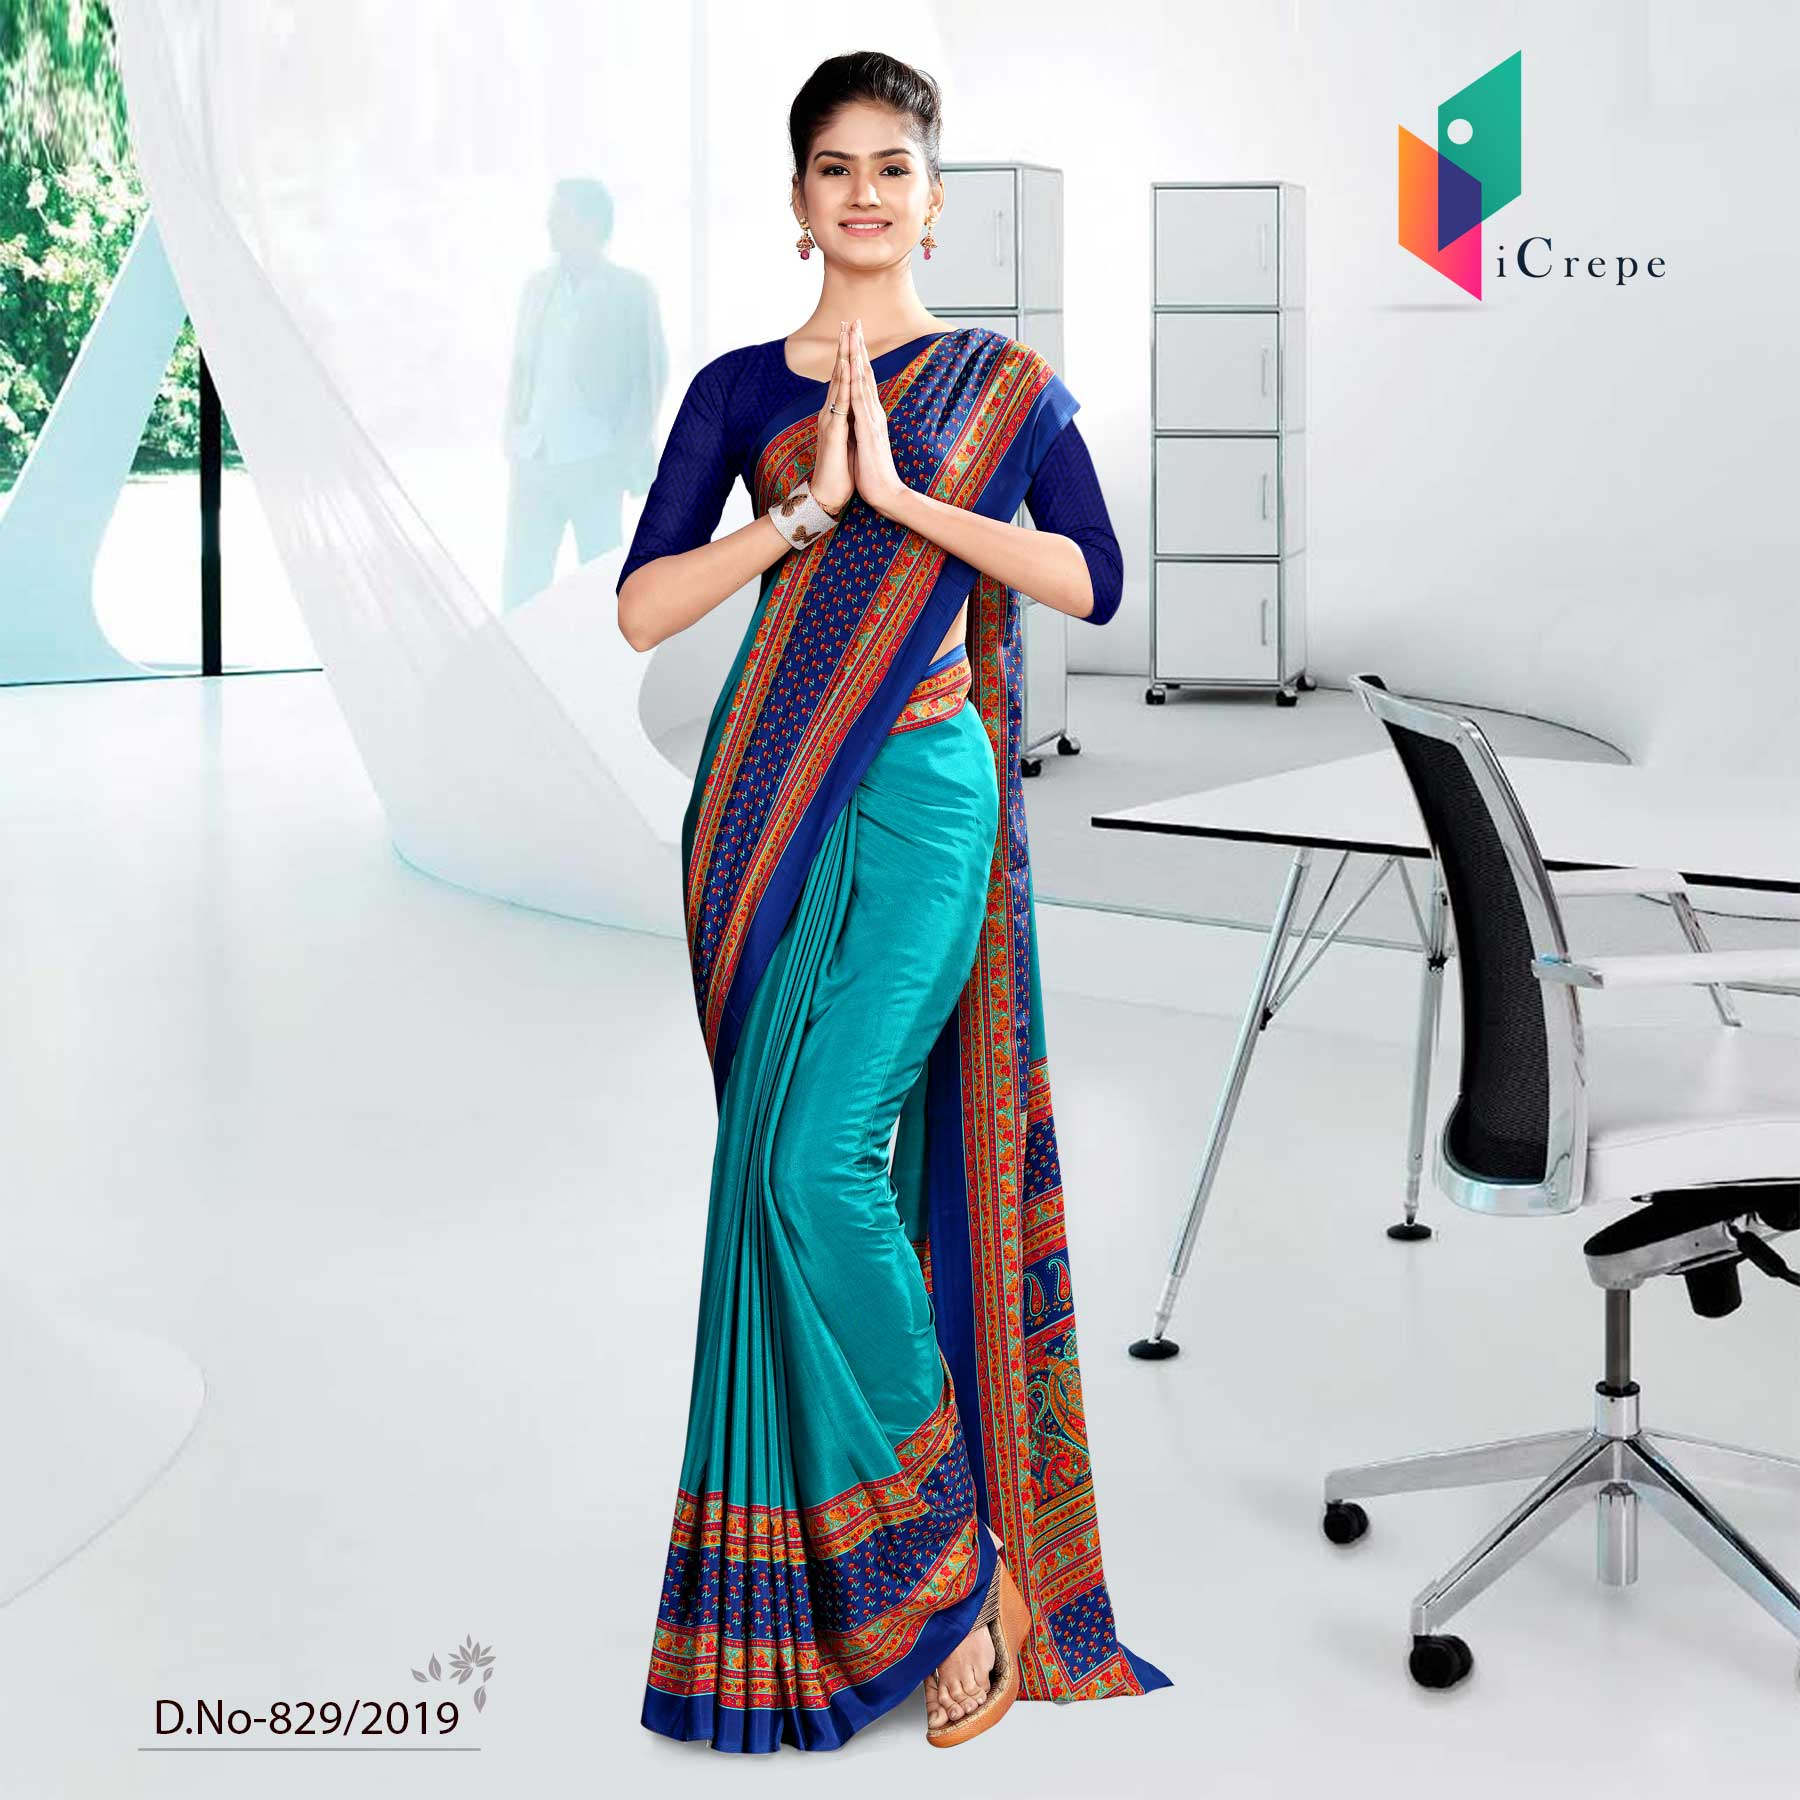 LIGHT BLUE AND BLUE   ICREPE  CORPORATE UNIFORM SAREE